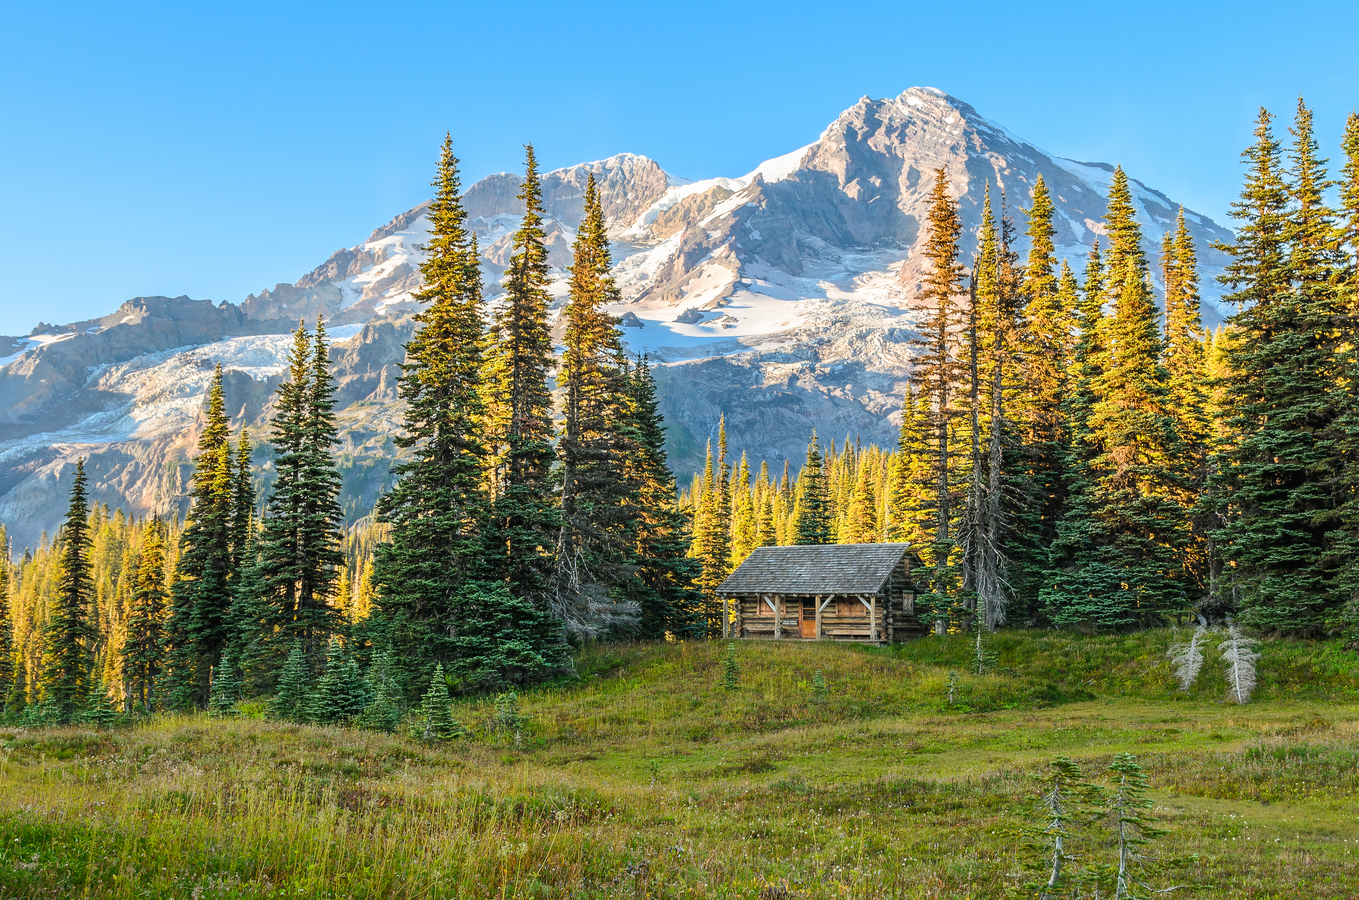 Indian Henry's Patrol Cabin - Mt. Ranier National Park, WA, USA